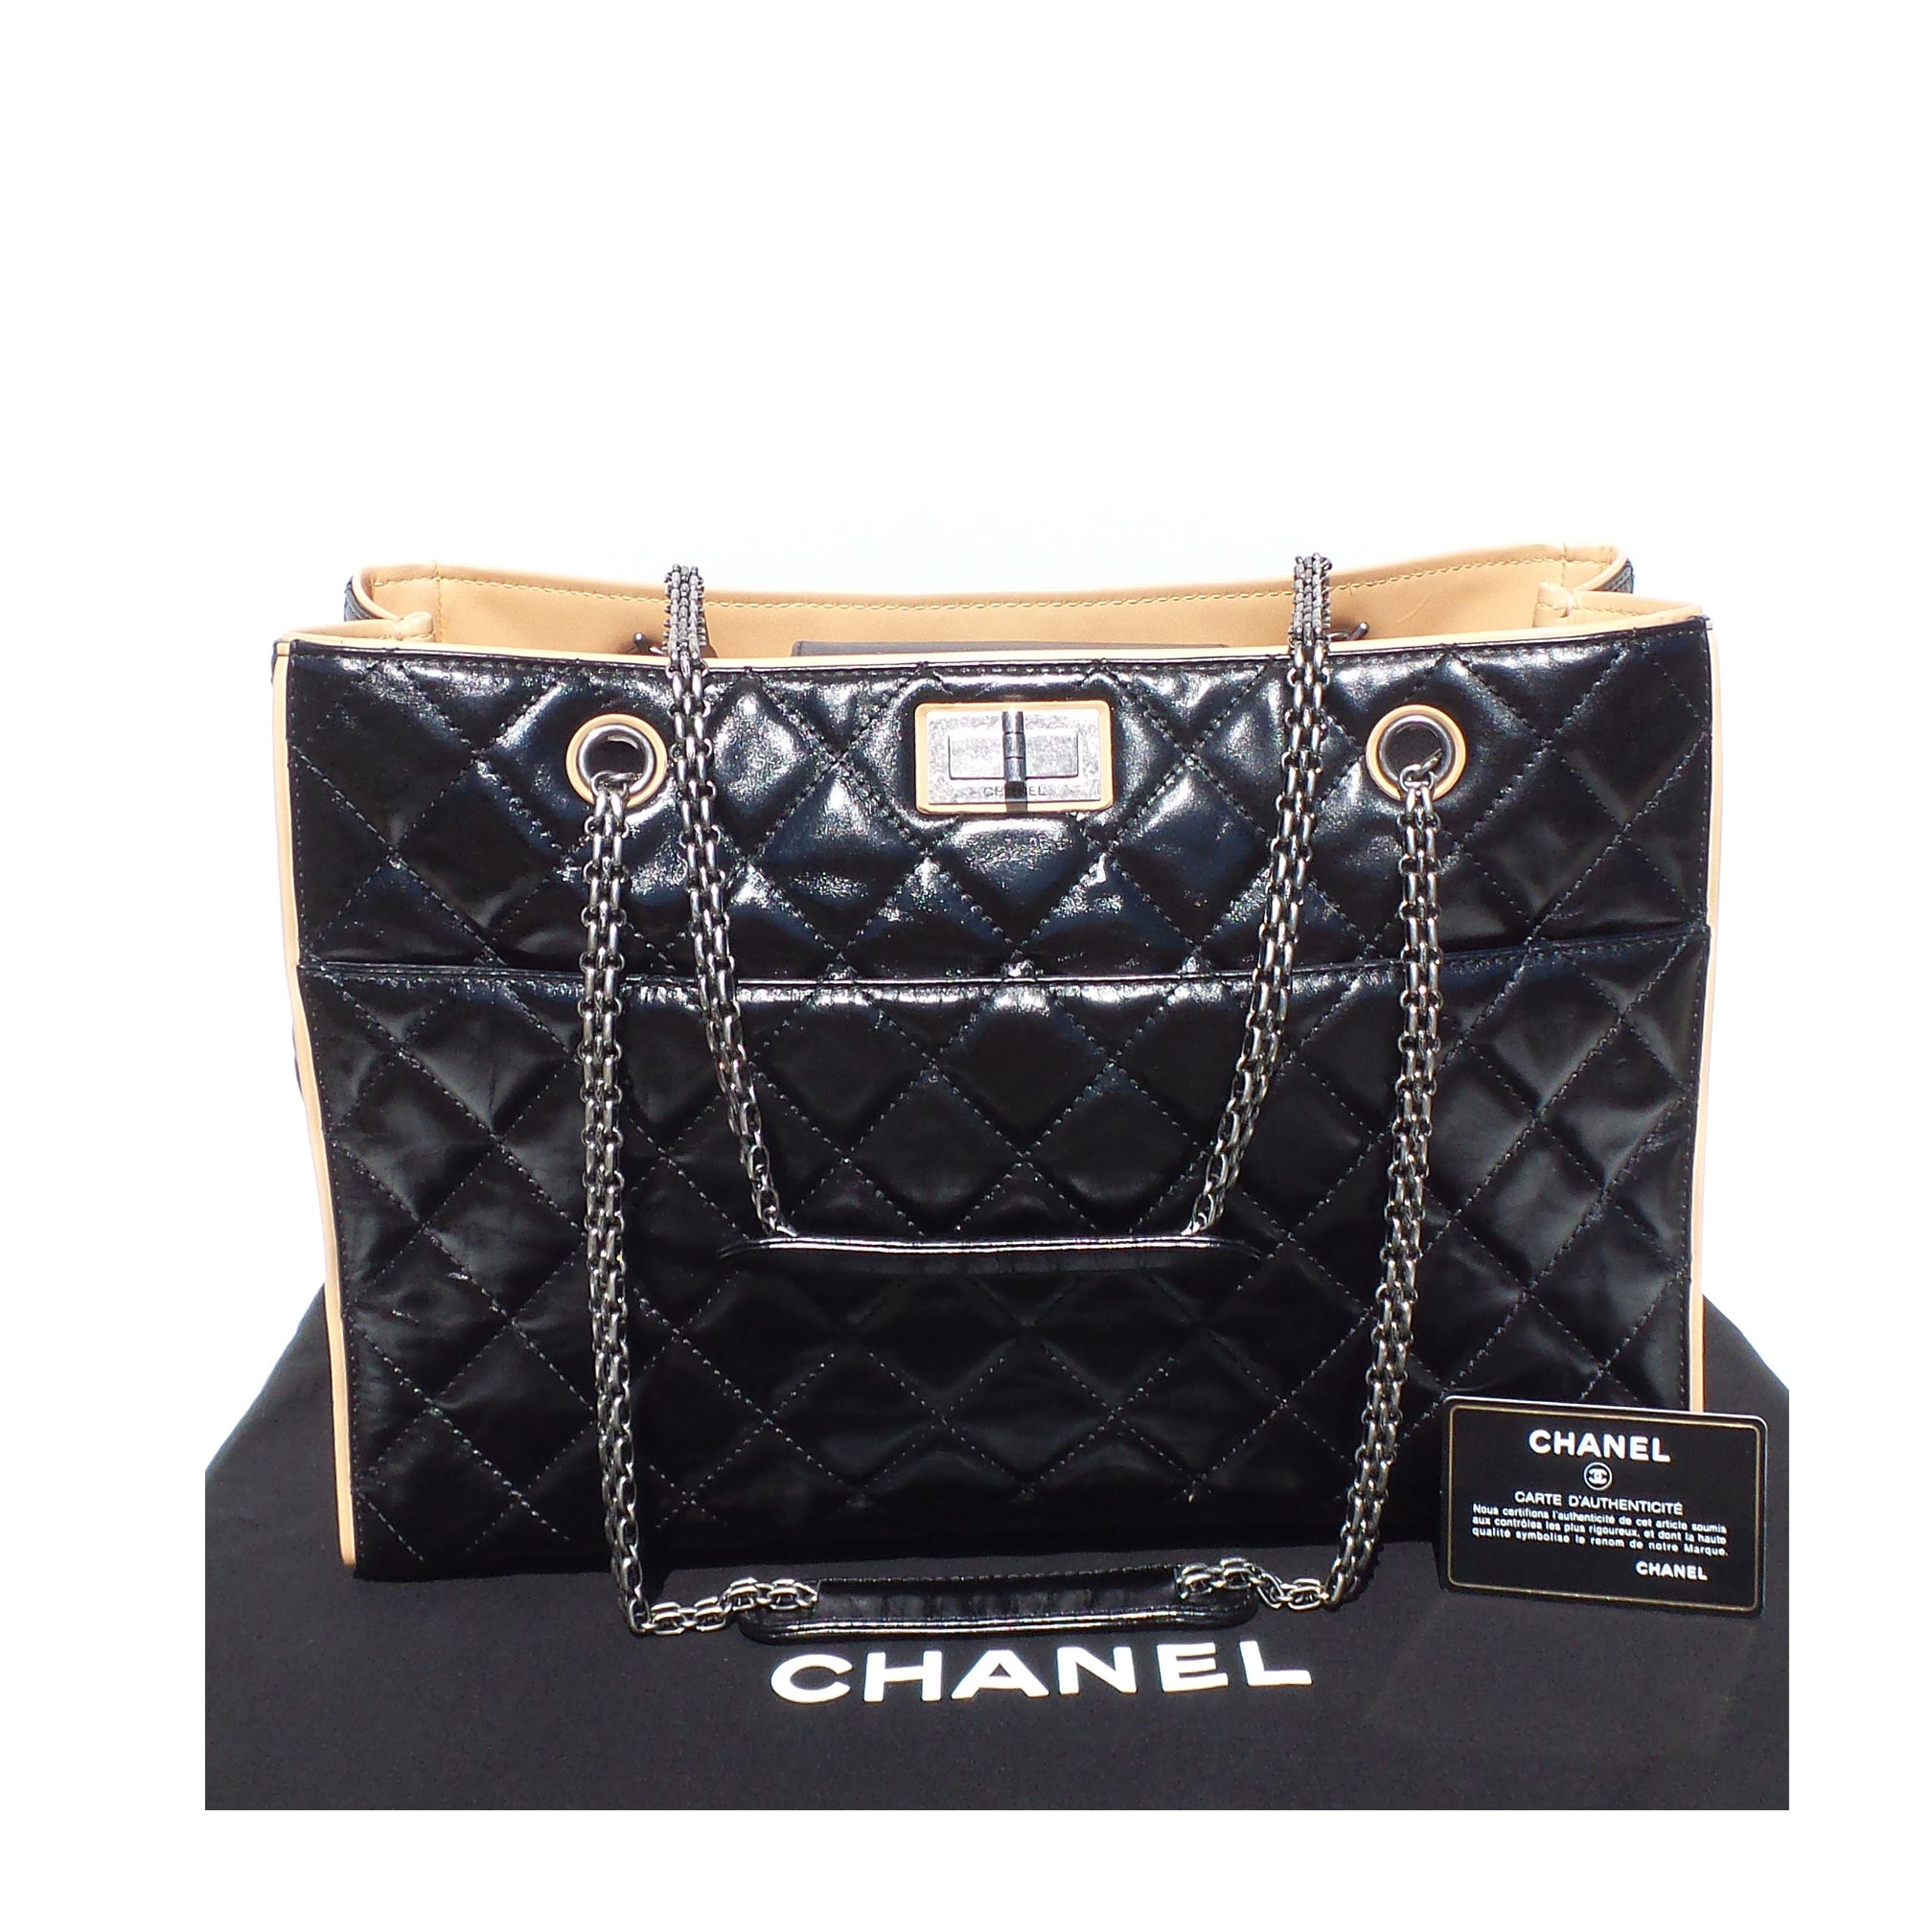 4304bb759328 CHANEL Black Glazed Quilted Leather Beige 2.55 Reissue Grand Shopping –  Encore Resale.com